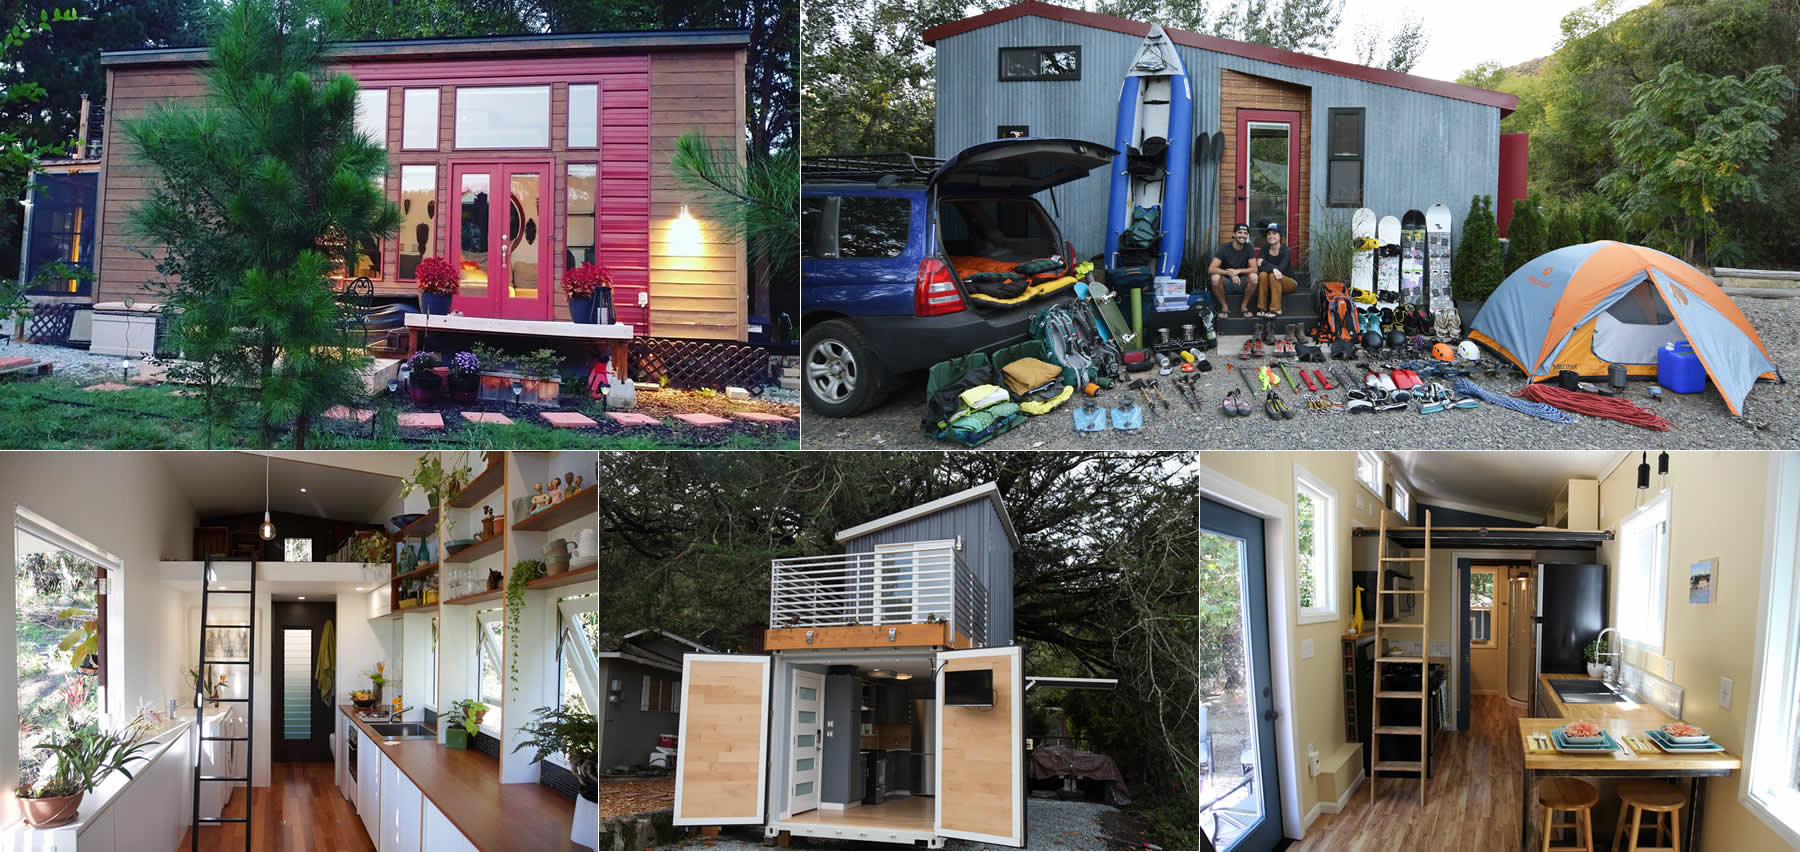 5 Days Left to Vote for Tiny House of the Year